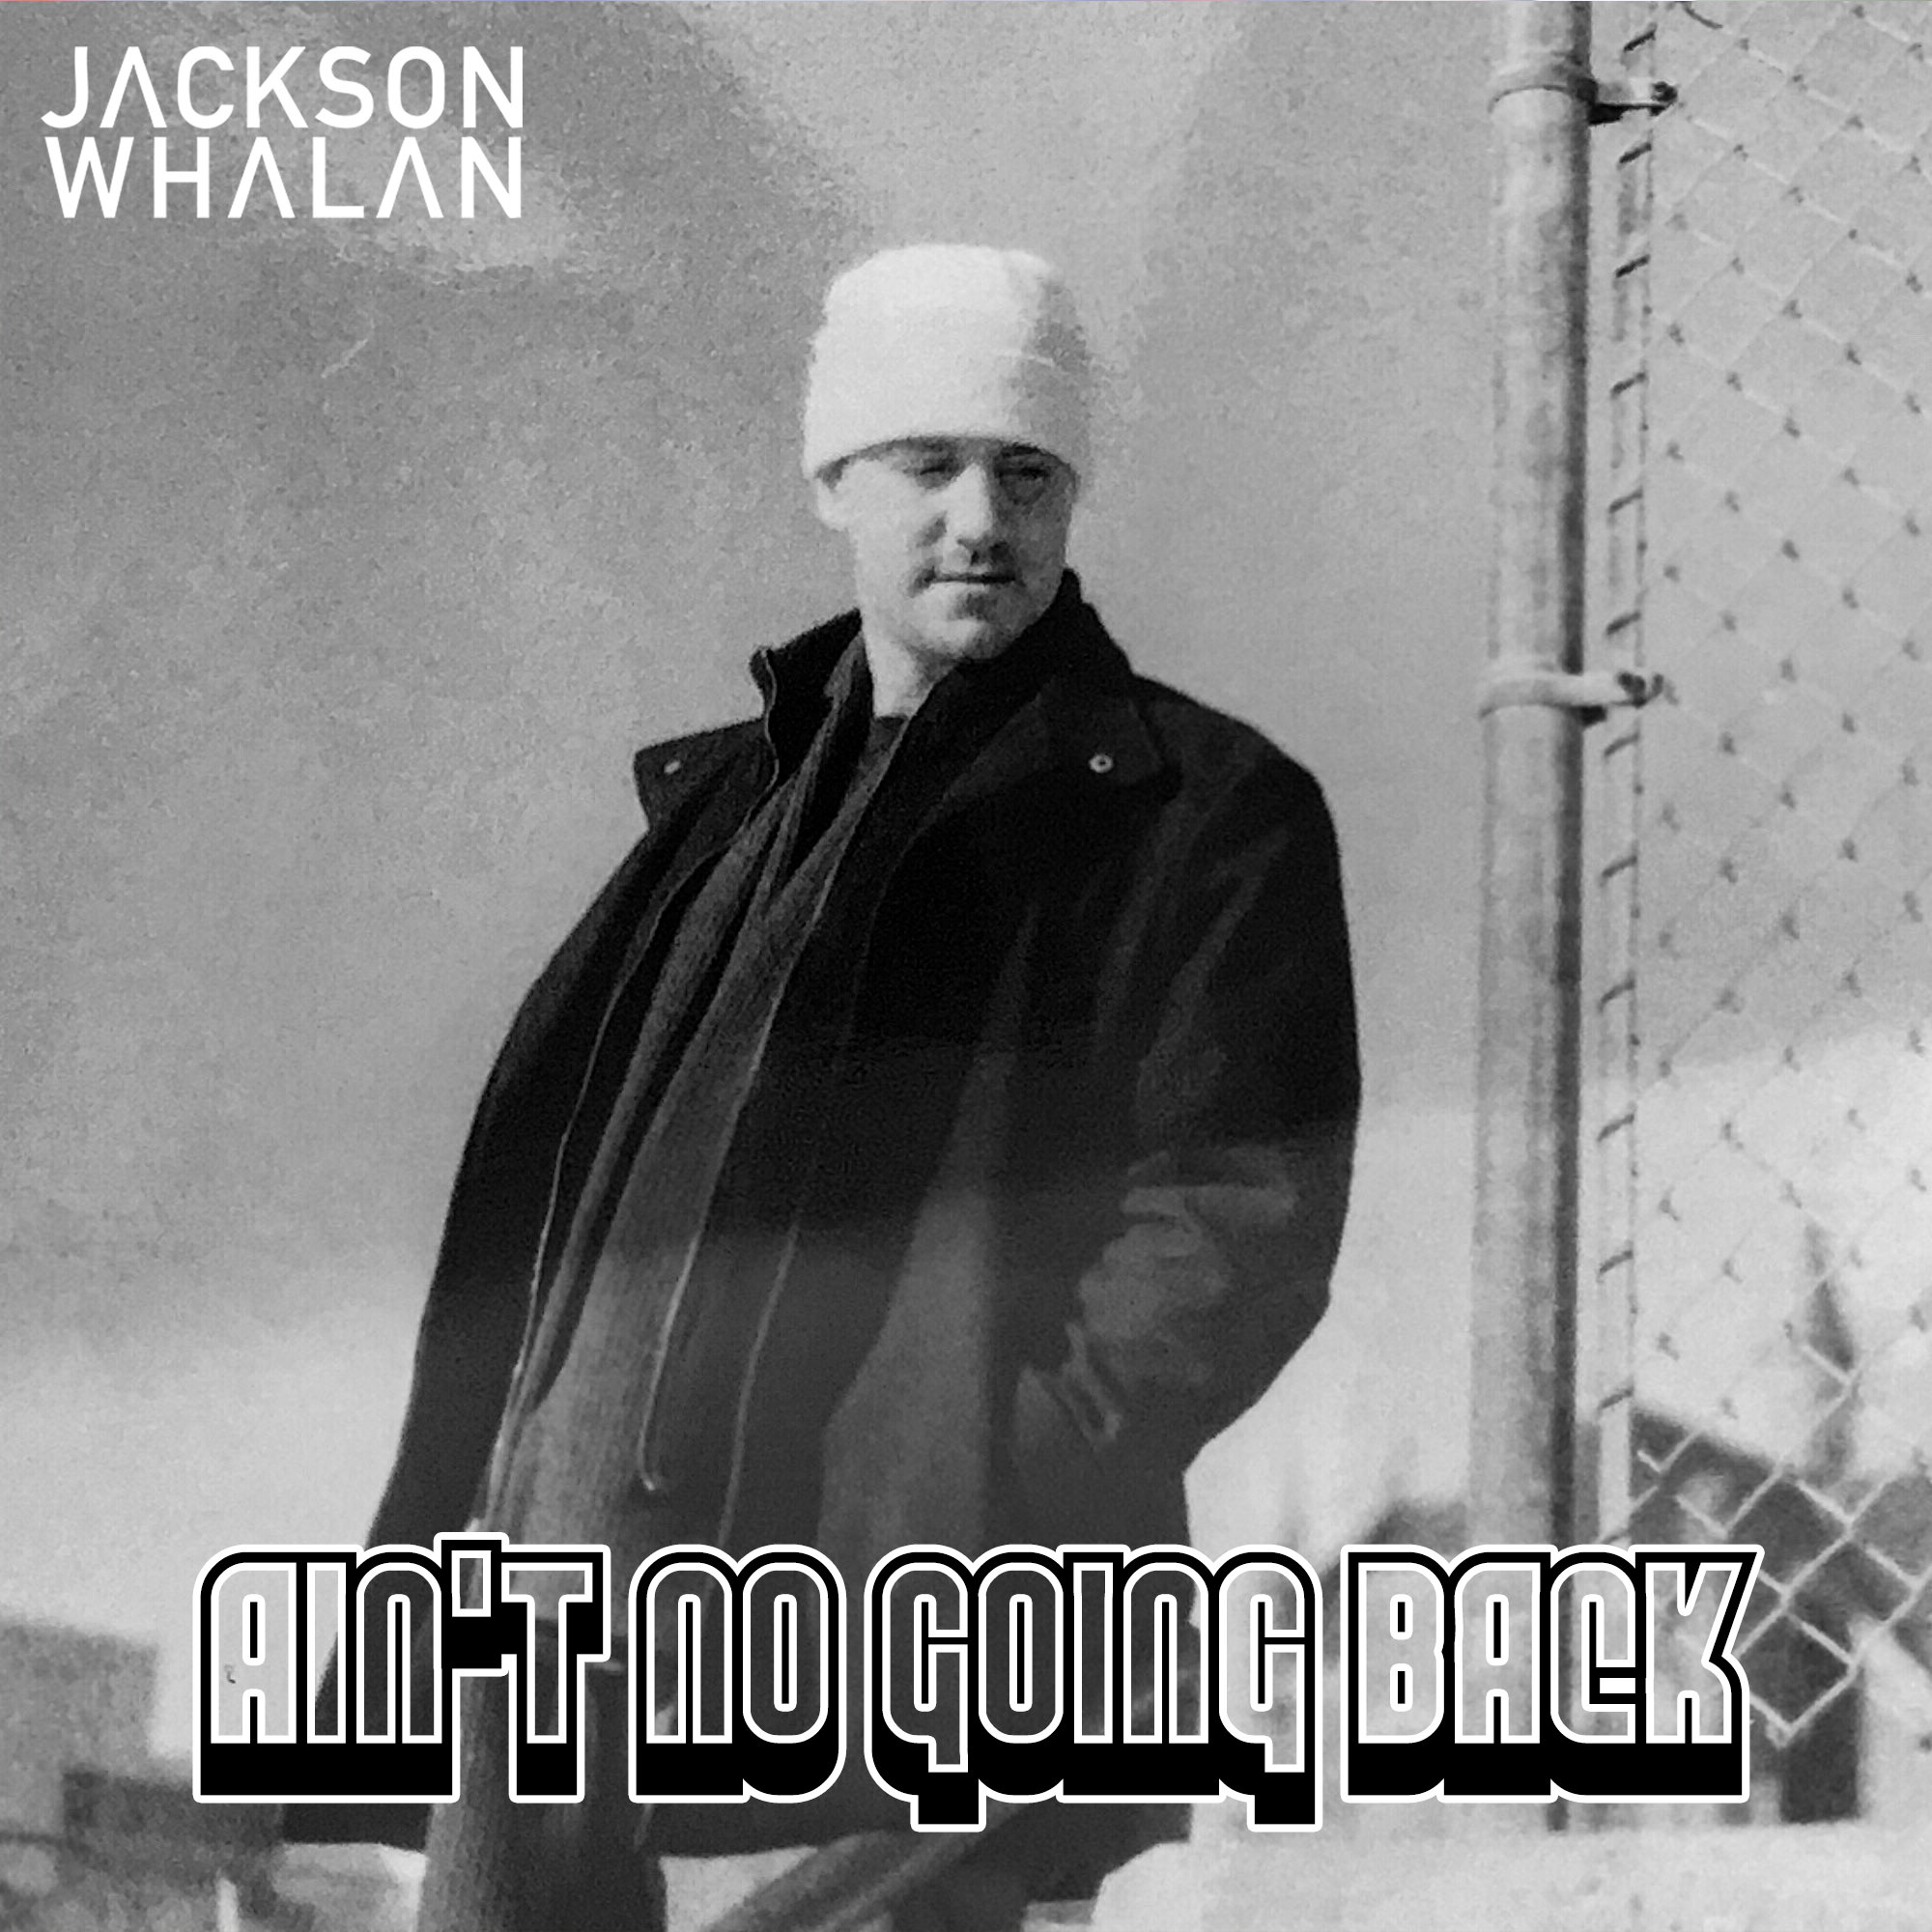 aint-no-going-back-love-song-jackson-whalan-hip-hop-rnb-soul-mac-miller-music-rap-lyricism-romantic-song-uplifting-robby-baier-atmosphere